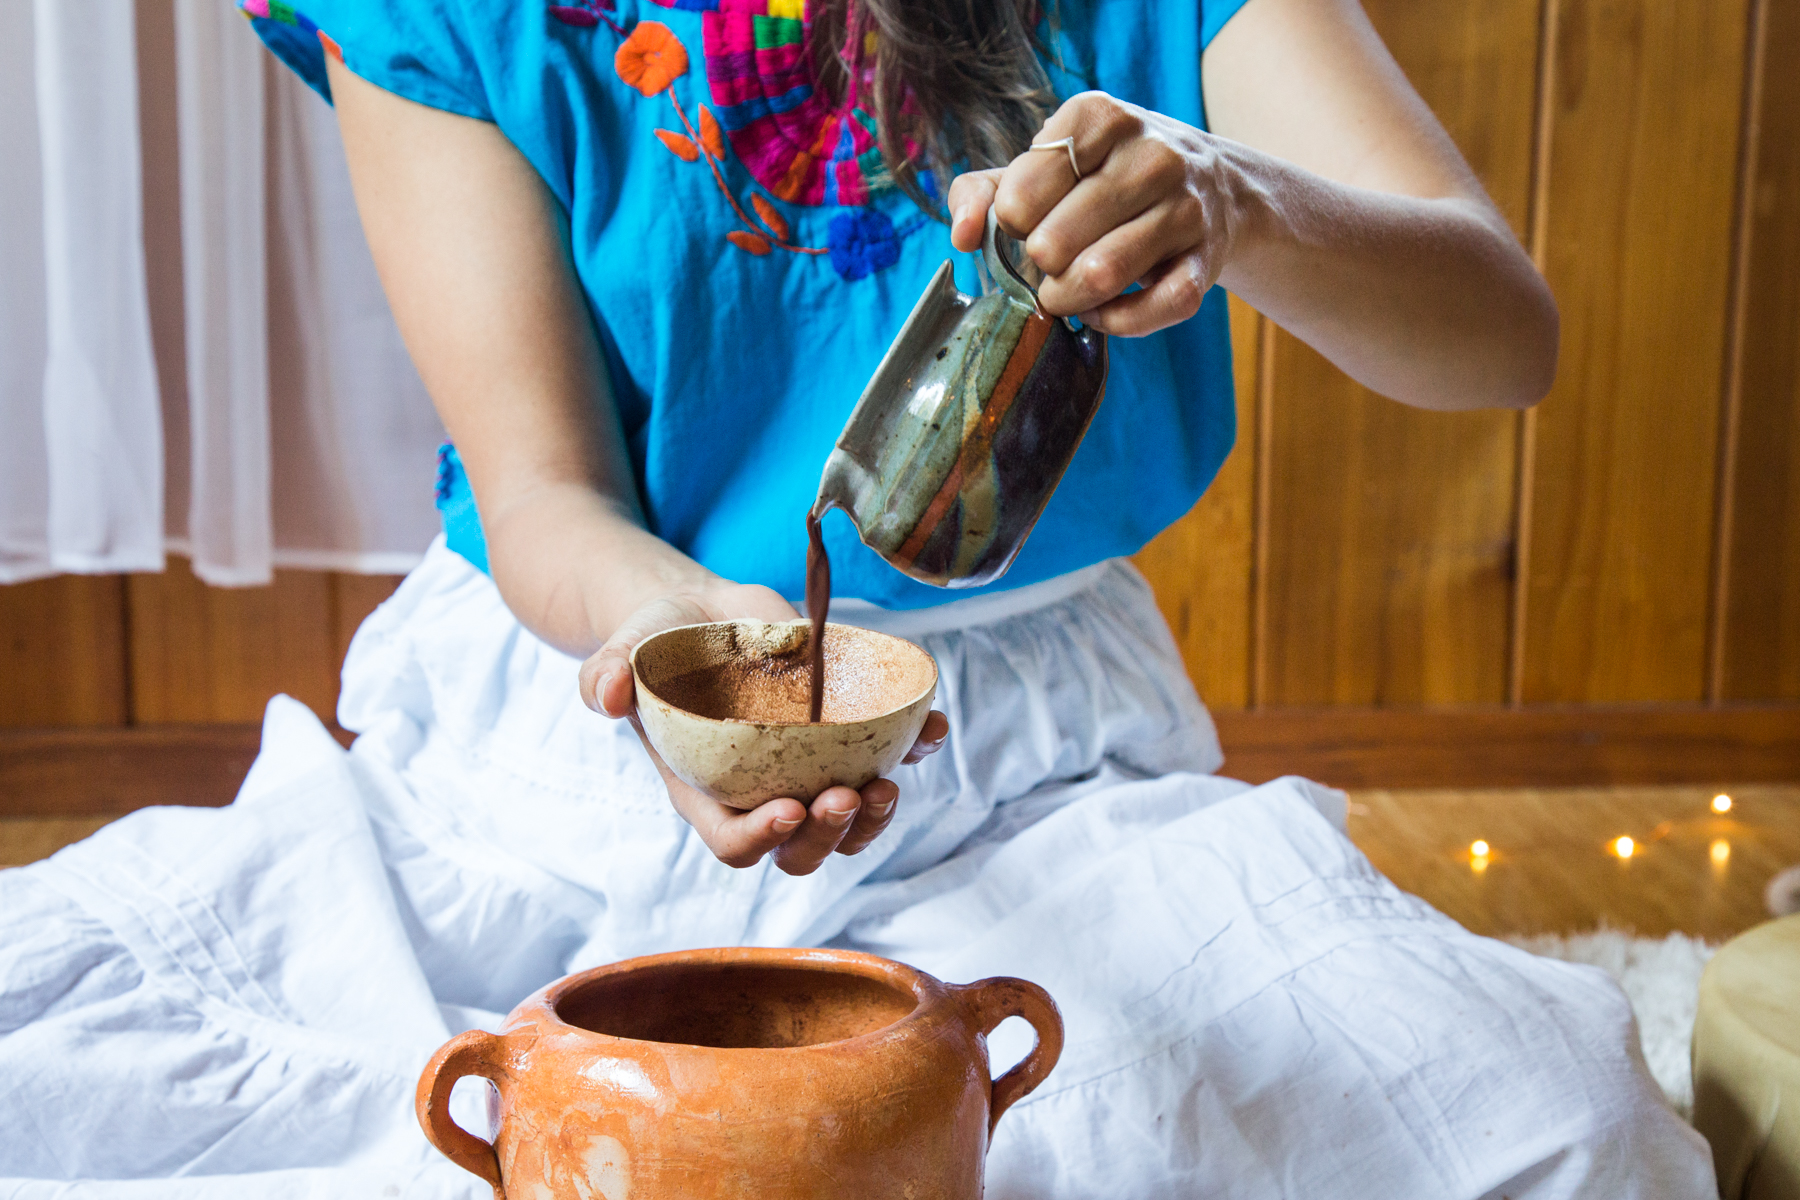 What's Included - How to prepare your own ceremonial cacao drink and personal practice at homeSisterhood - a safe and intimate container to be witnessed and supported (at scheduled meeting times and also in-between via private group chat)Weekly prompts to connect deeper to the heart8 ounces of ceremonial cacao